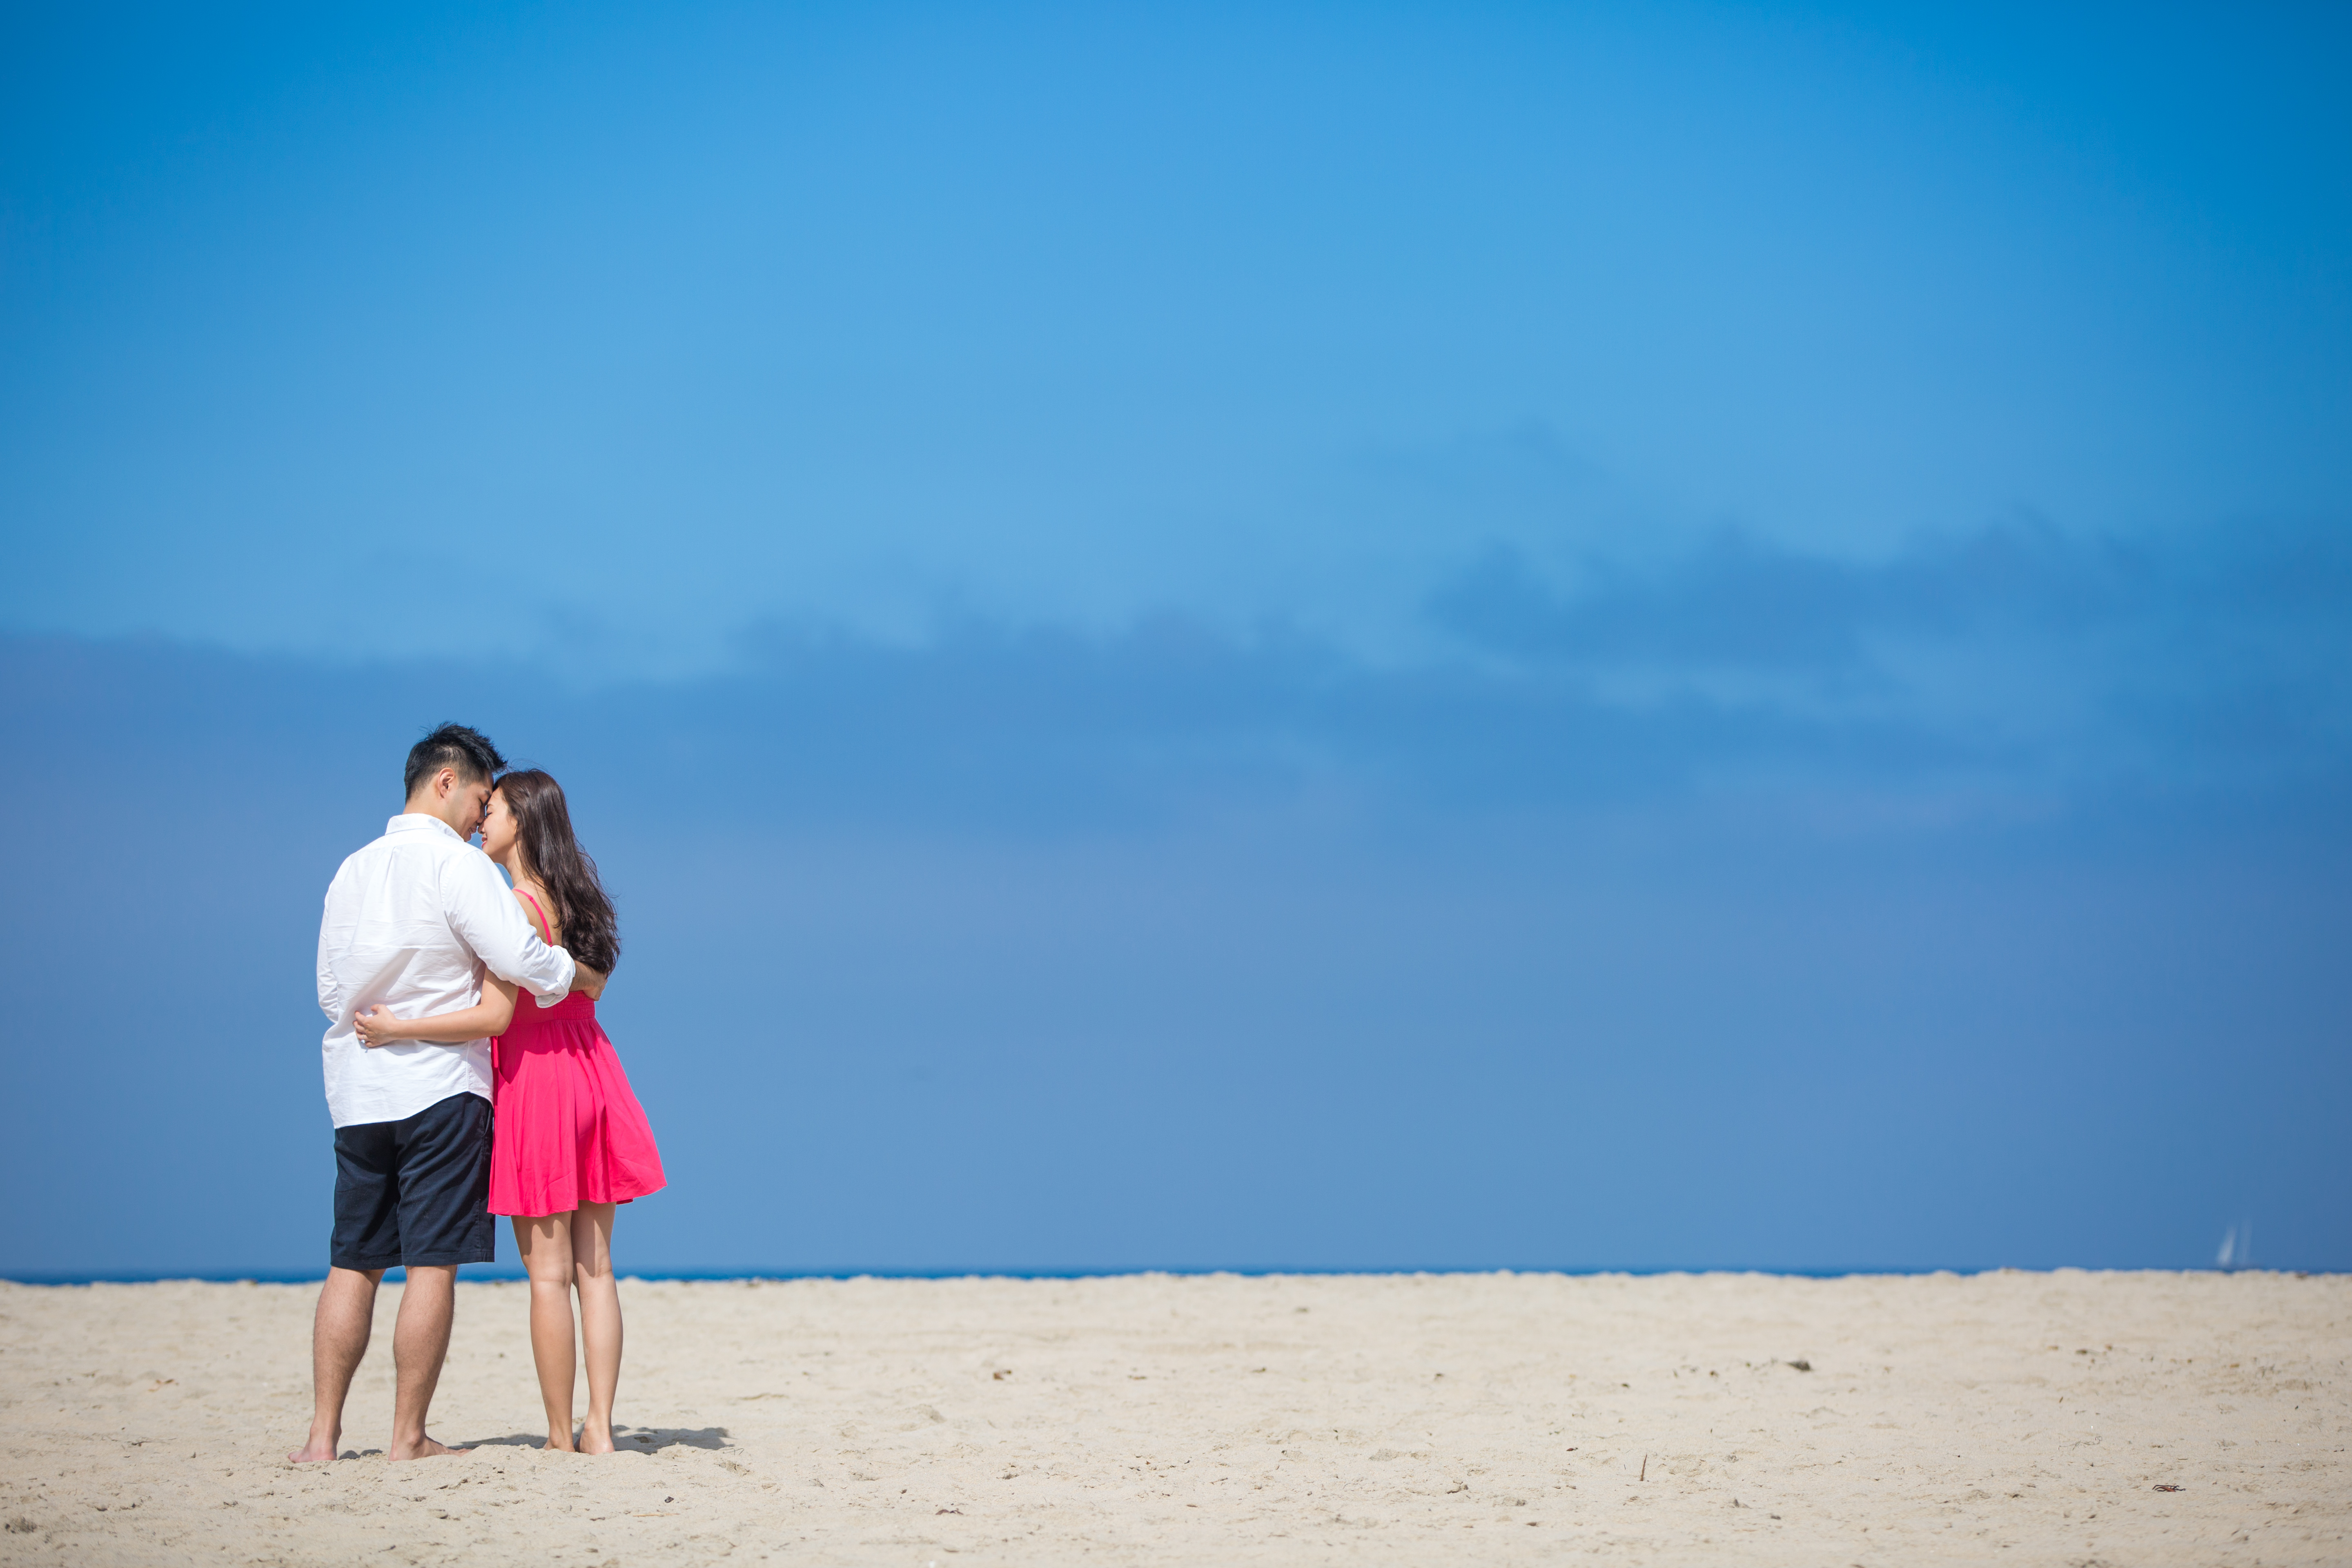 Ritz Carlton engagement shoot, Beach wedding, Brett Hickman Photographer, A Good Affair Wedding & Event Production